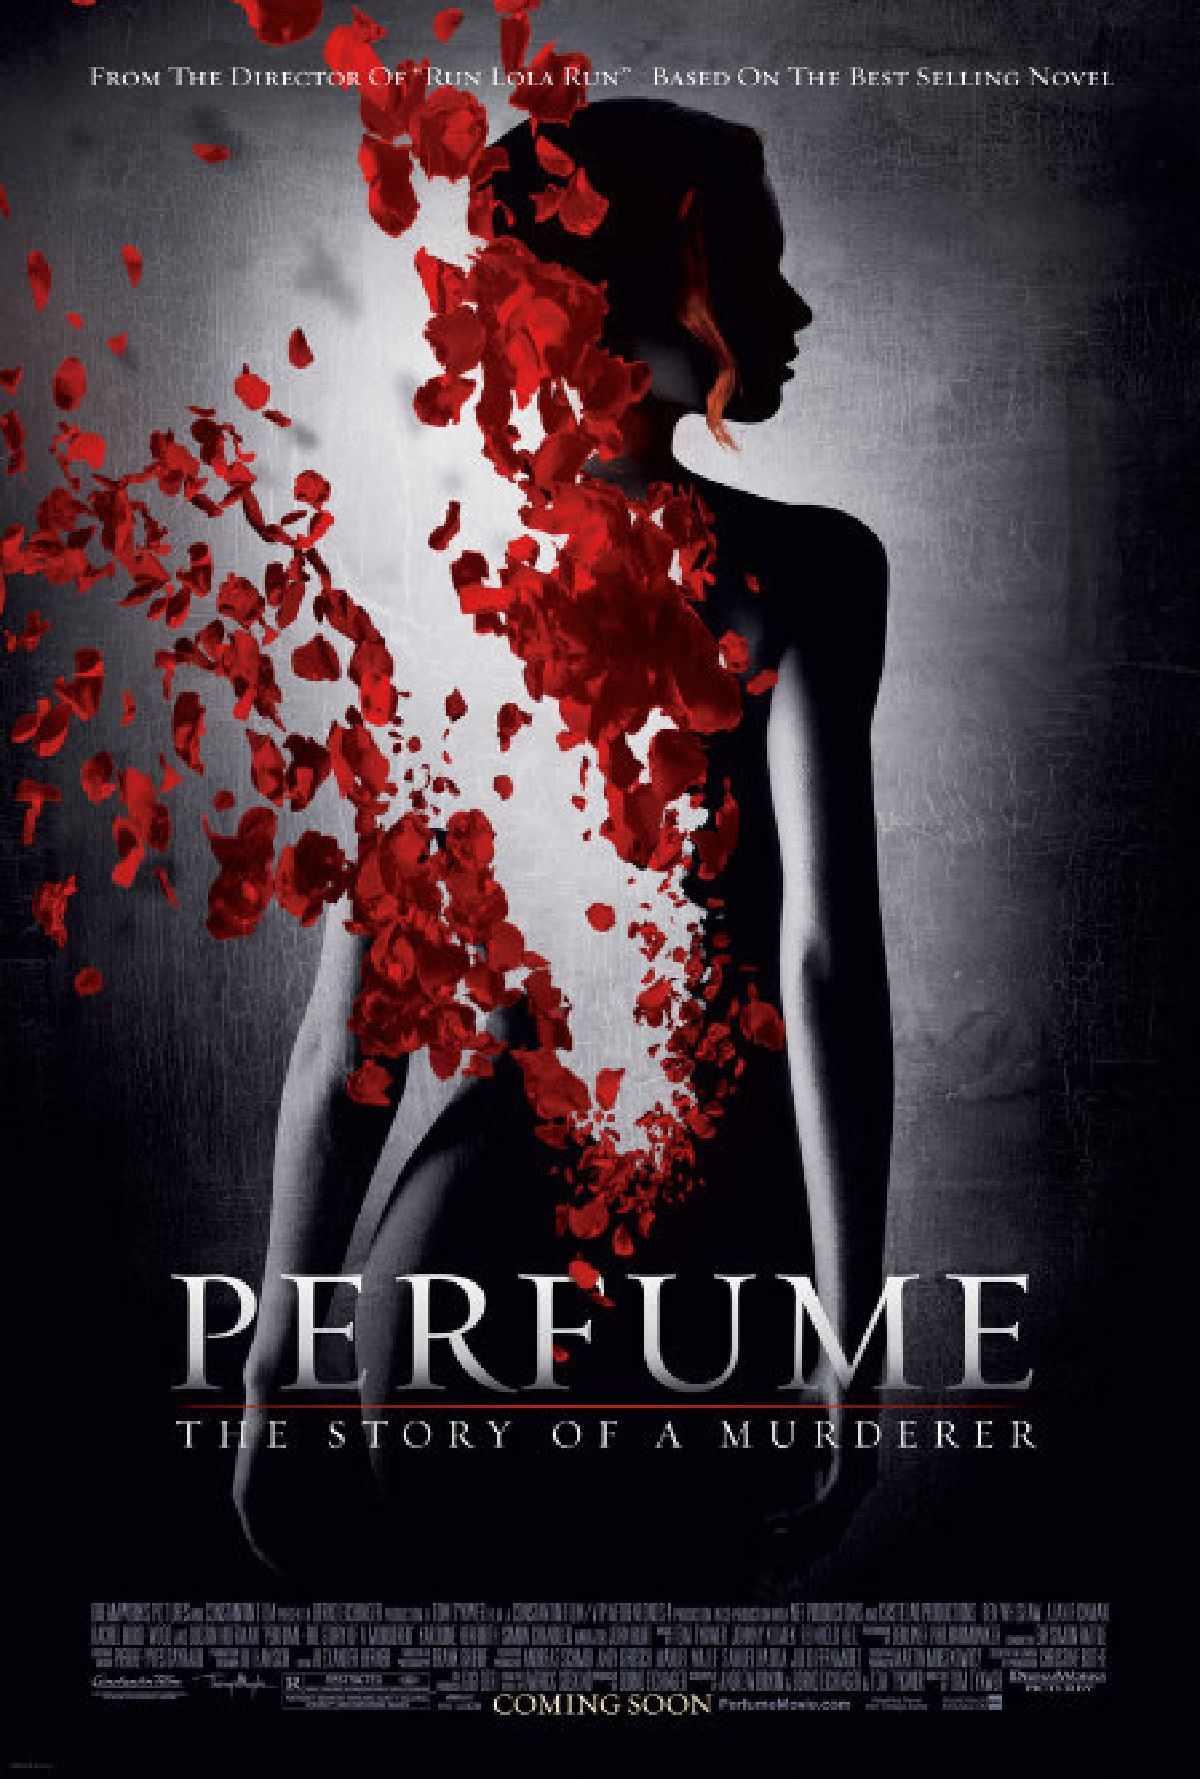 'Perfume: The Story Of A Murderer' movie poster